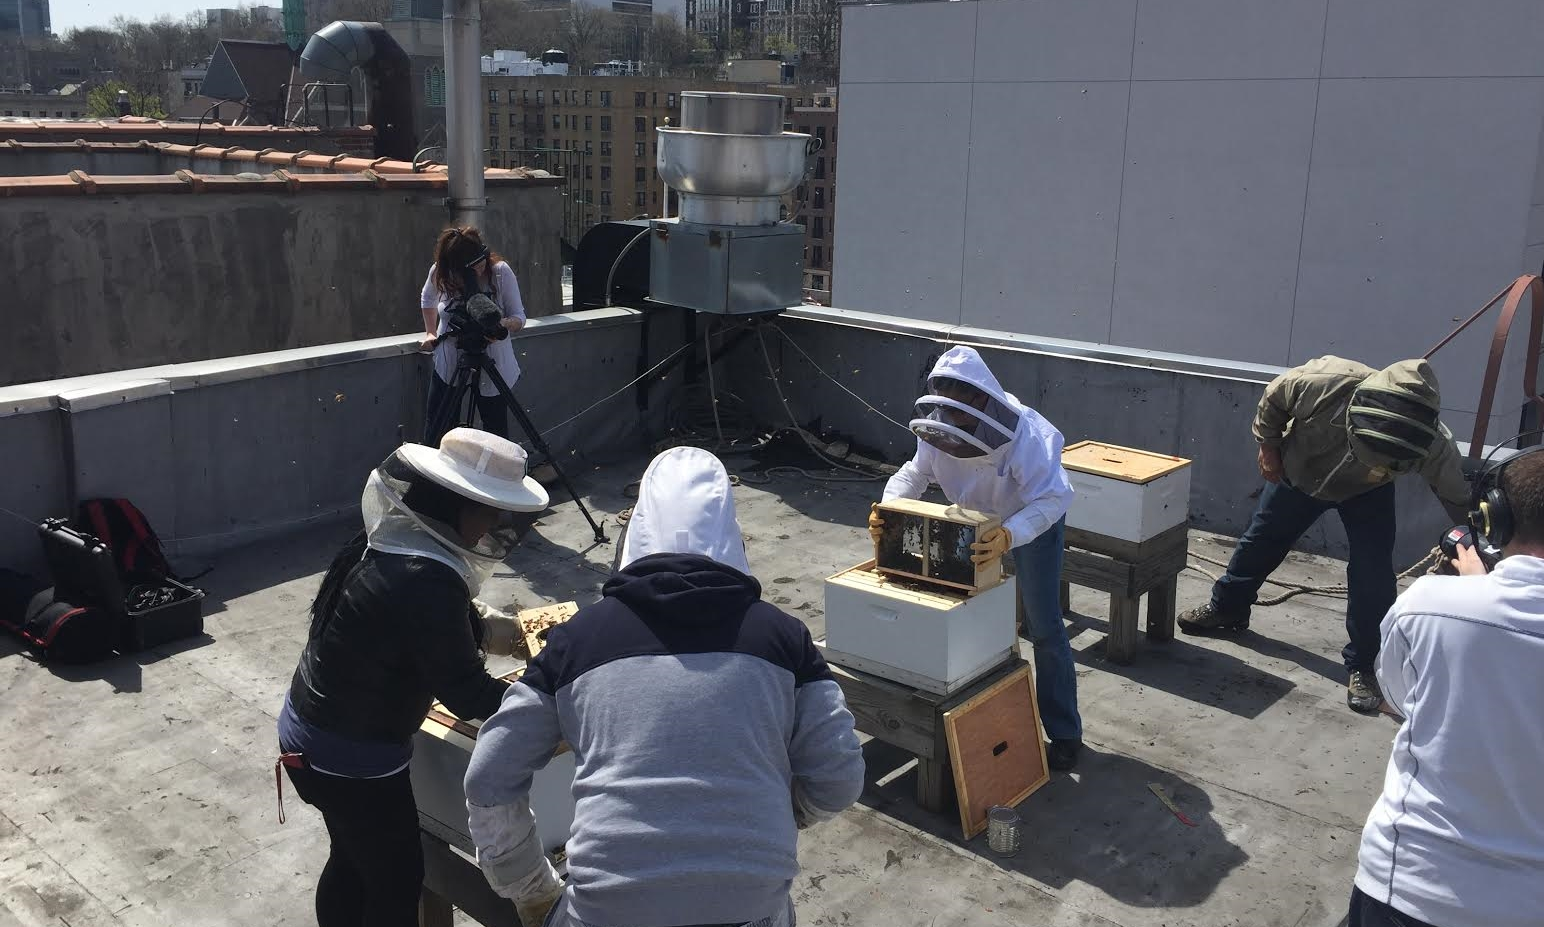 Apprentices installing new packages of bees at a Harlem rooftop apiary.